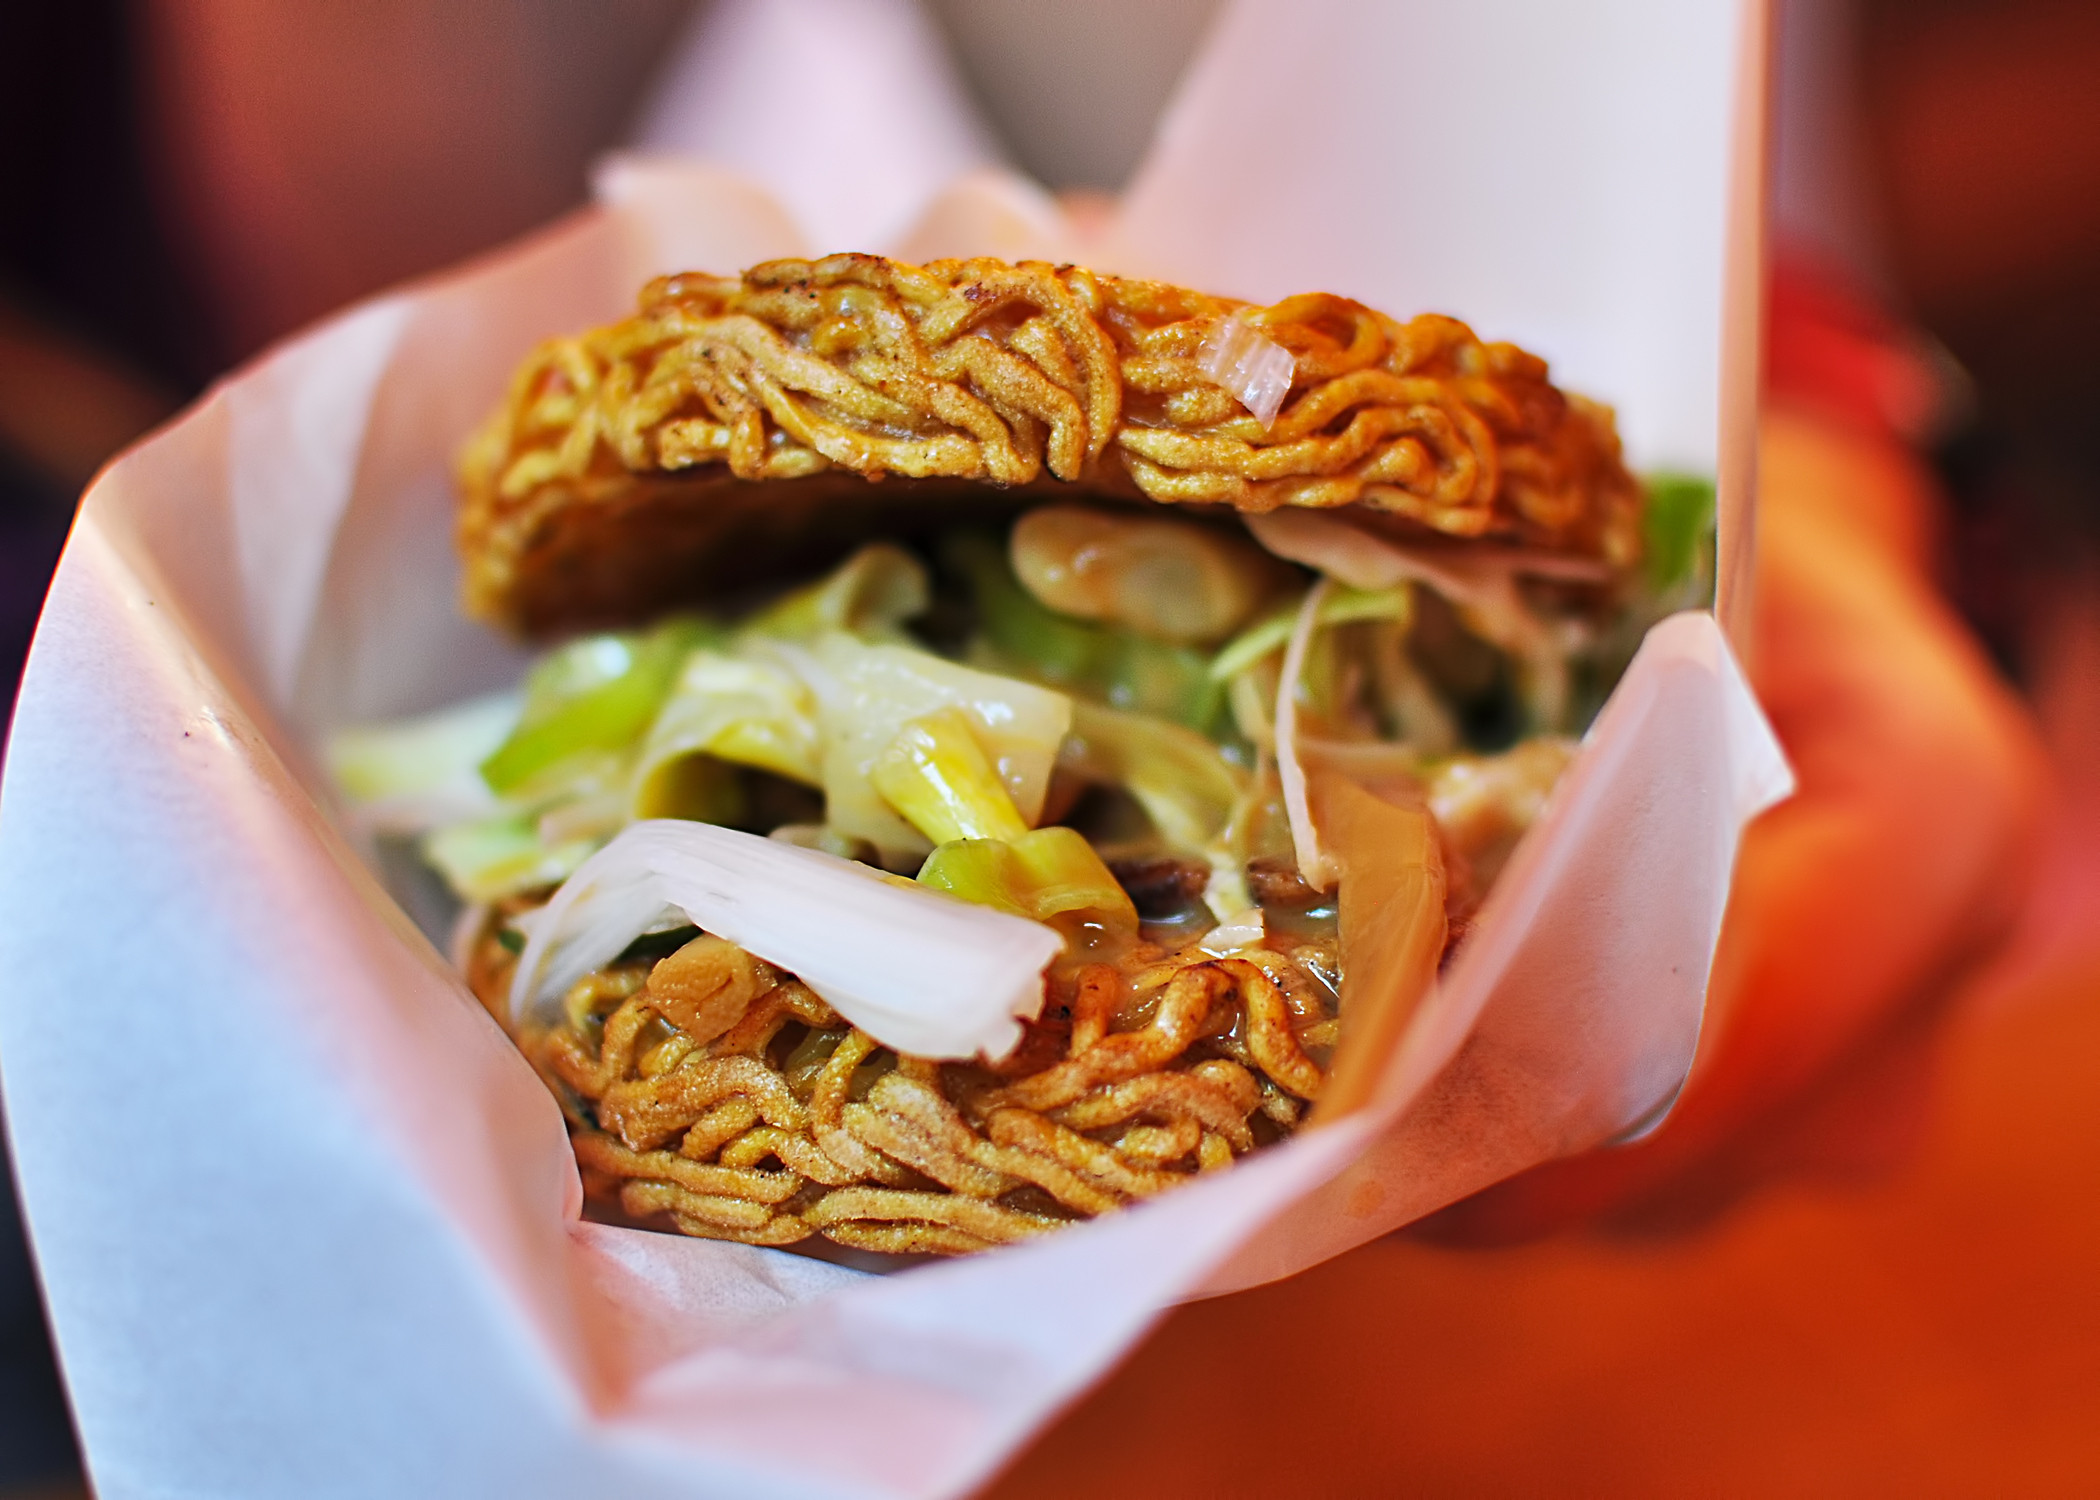 2013-08-28-RAMENBURGER_original.jpg